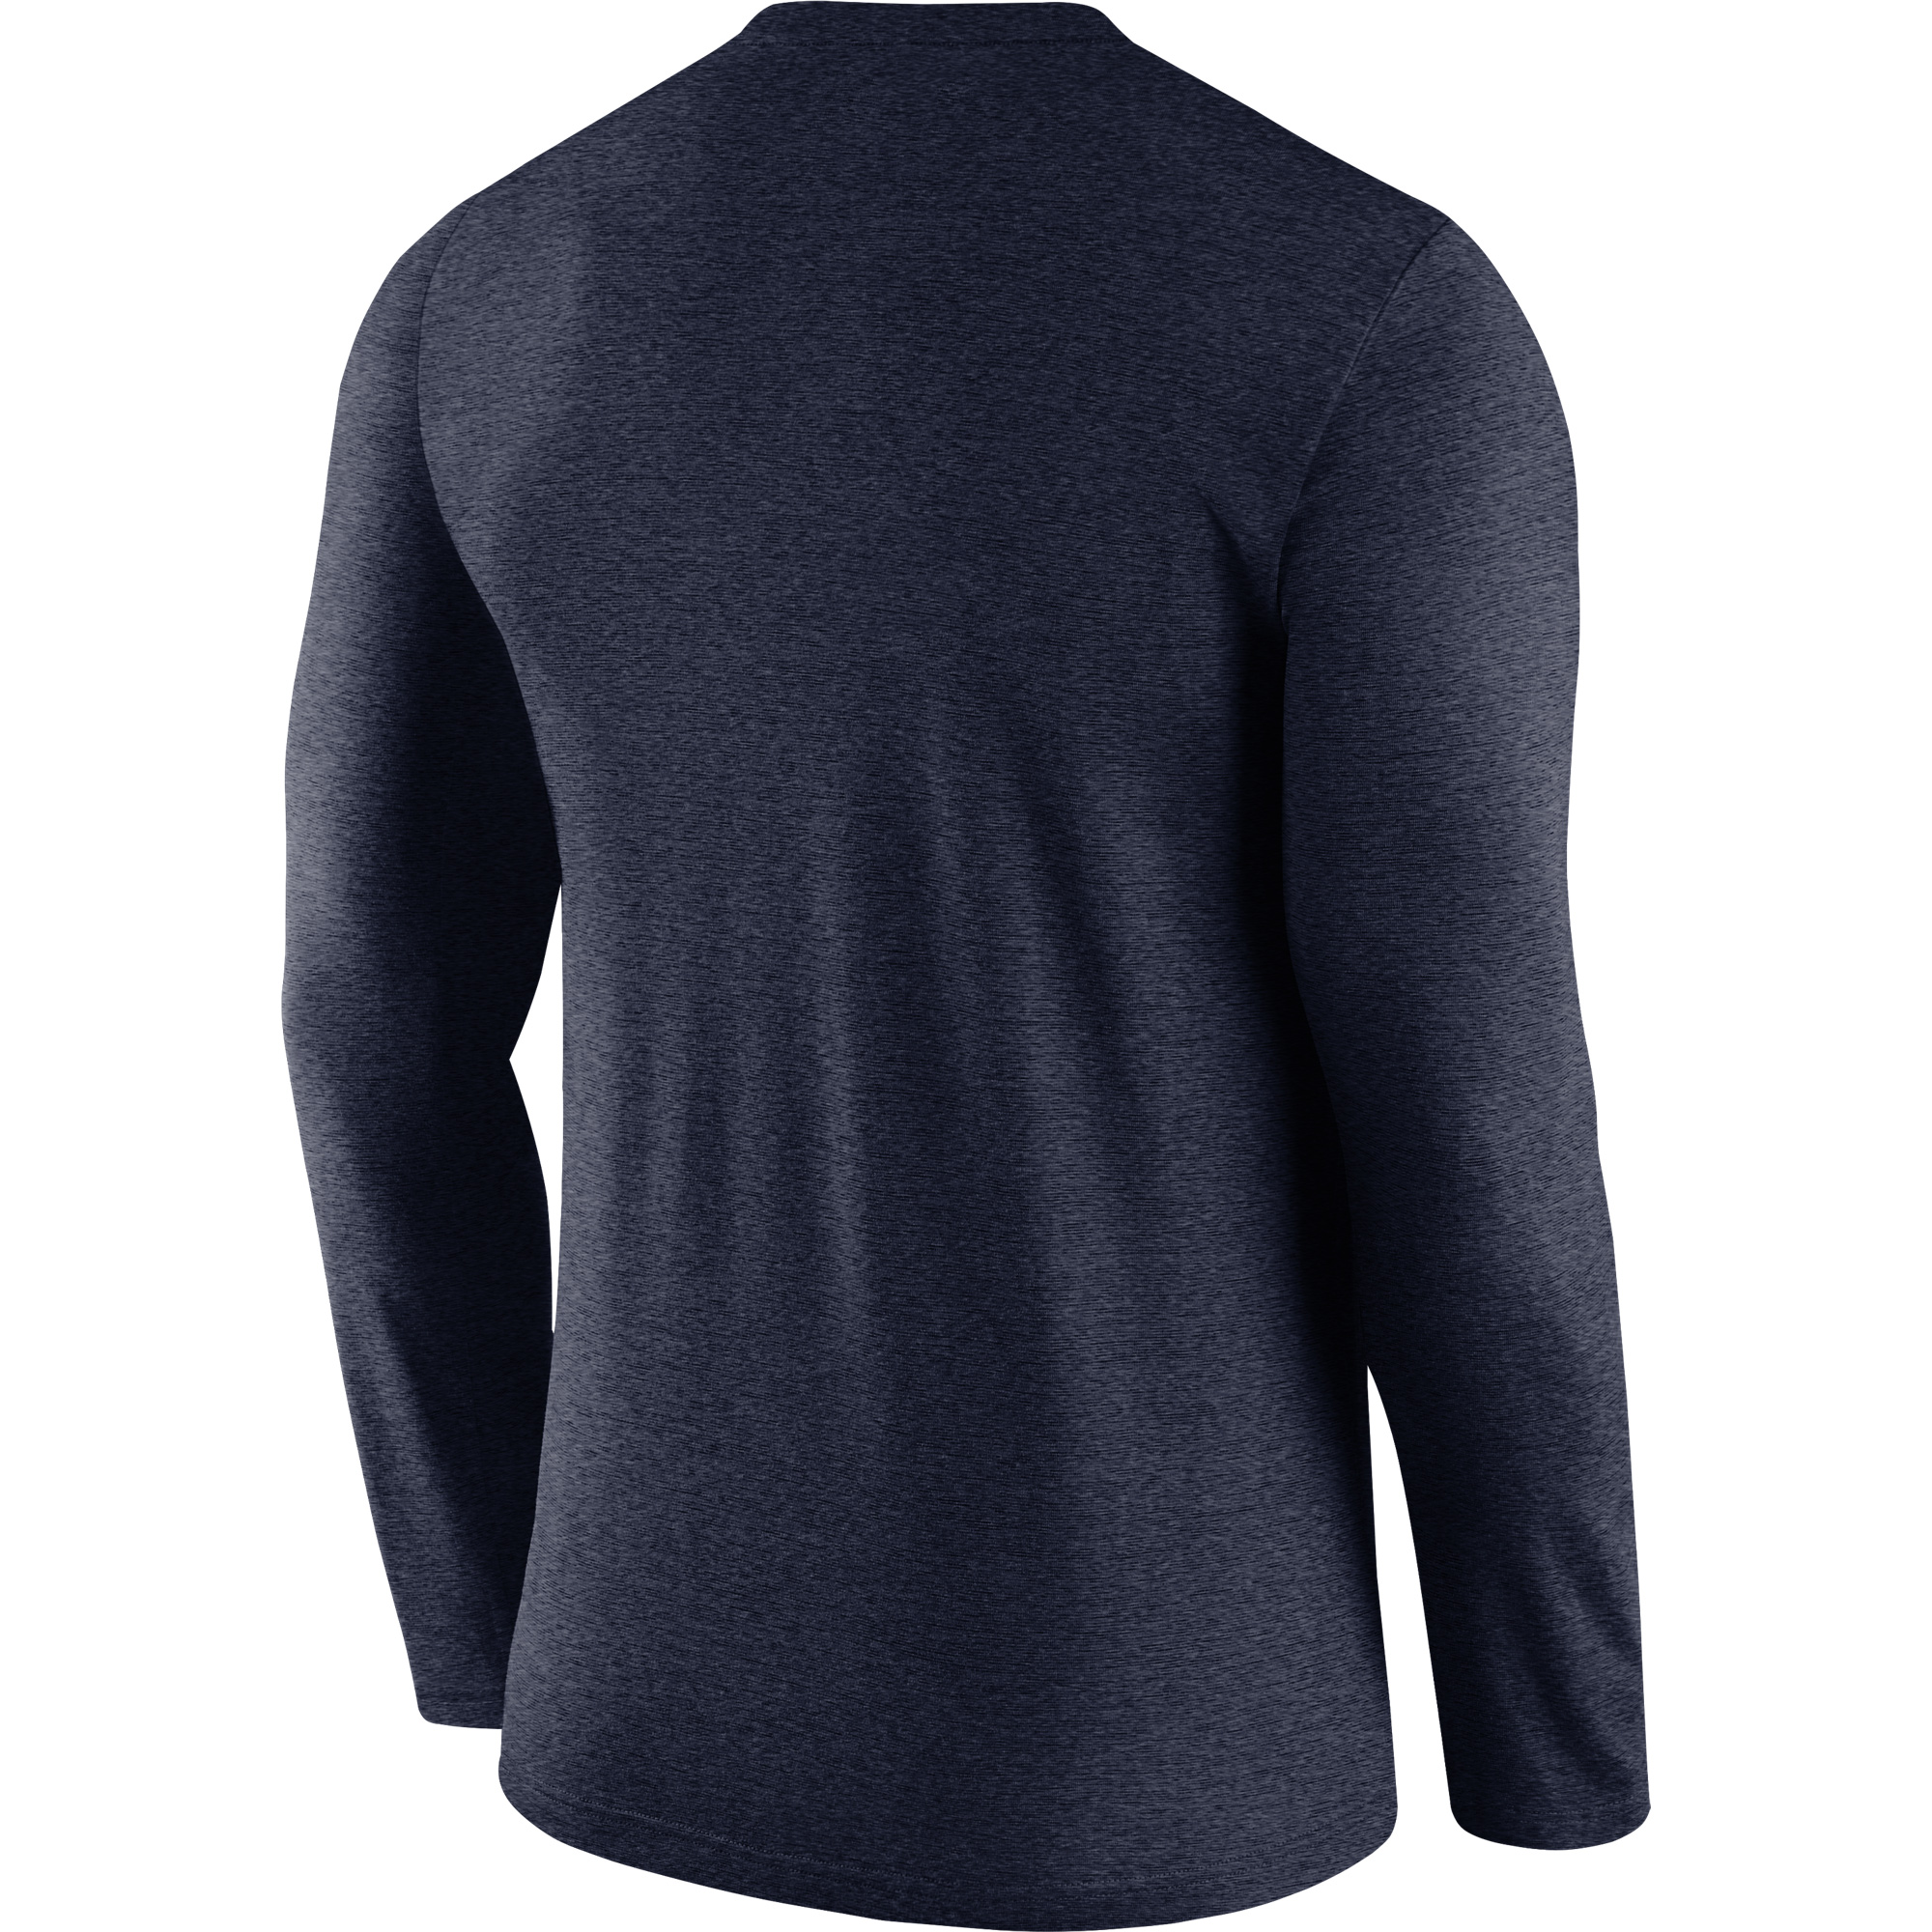 739583c62 Penn State Nittany Lions Nike 2019 Coaches Sideline UV Performance Long  Sleeve Top - Navy - Walmart.com